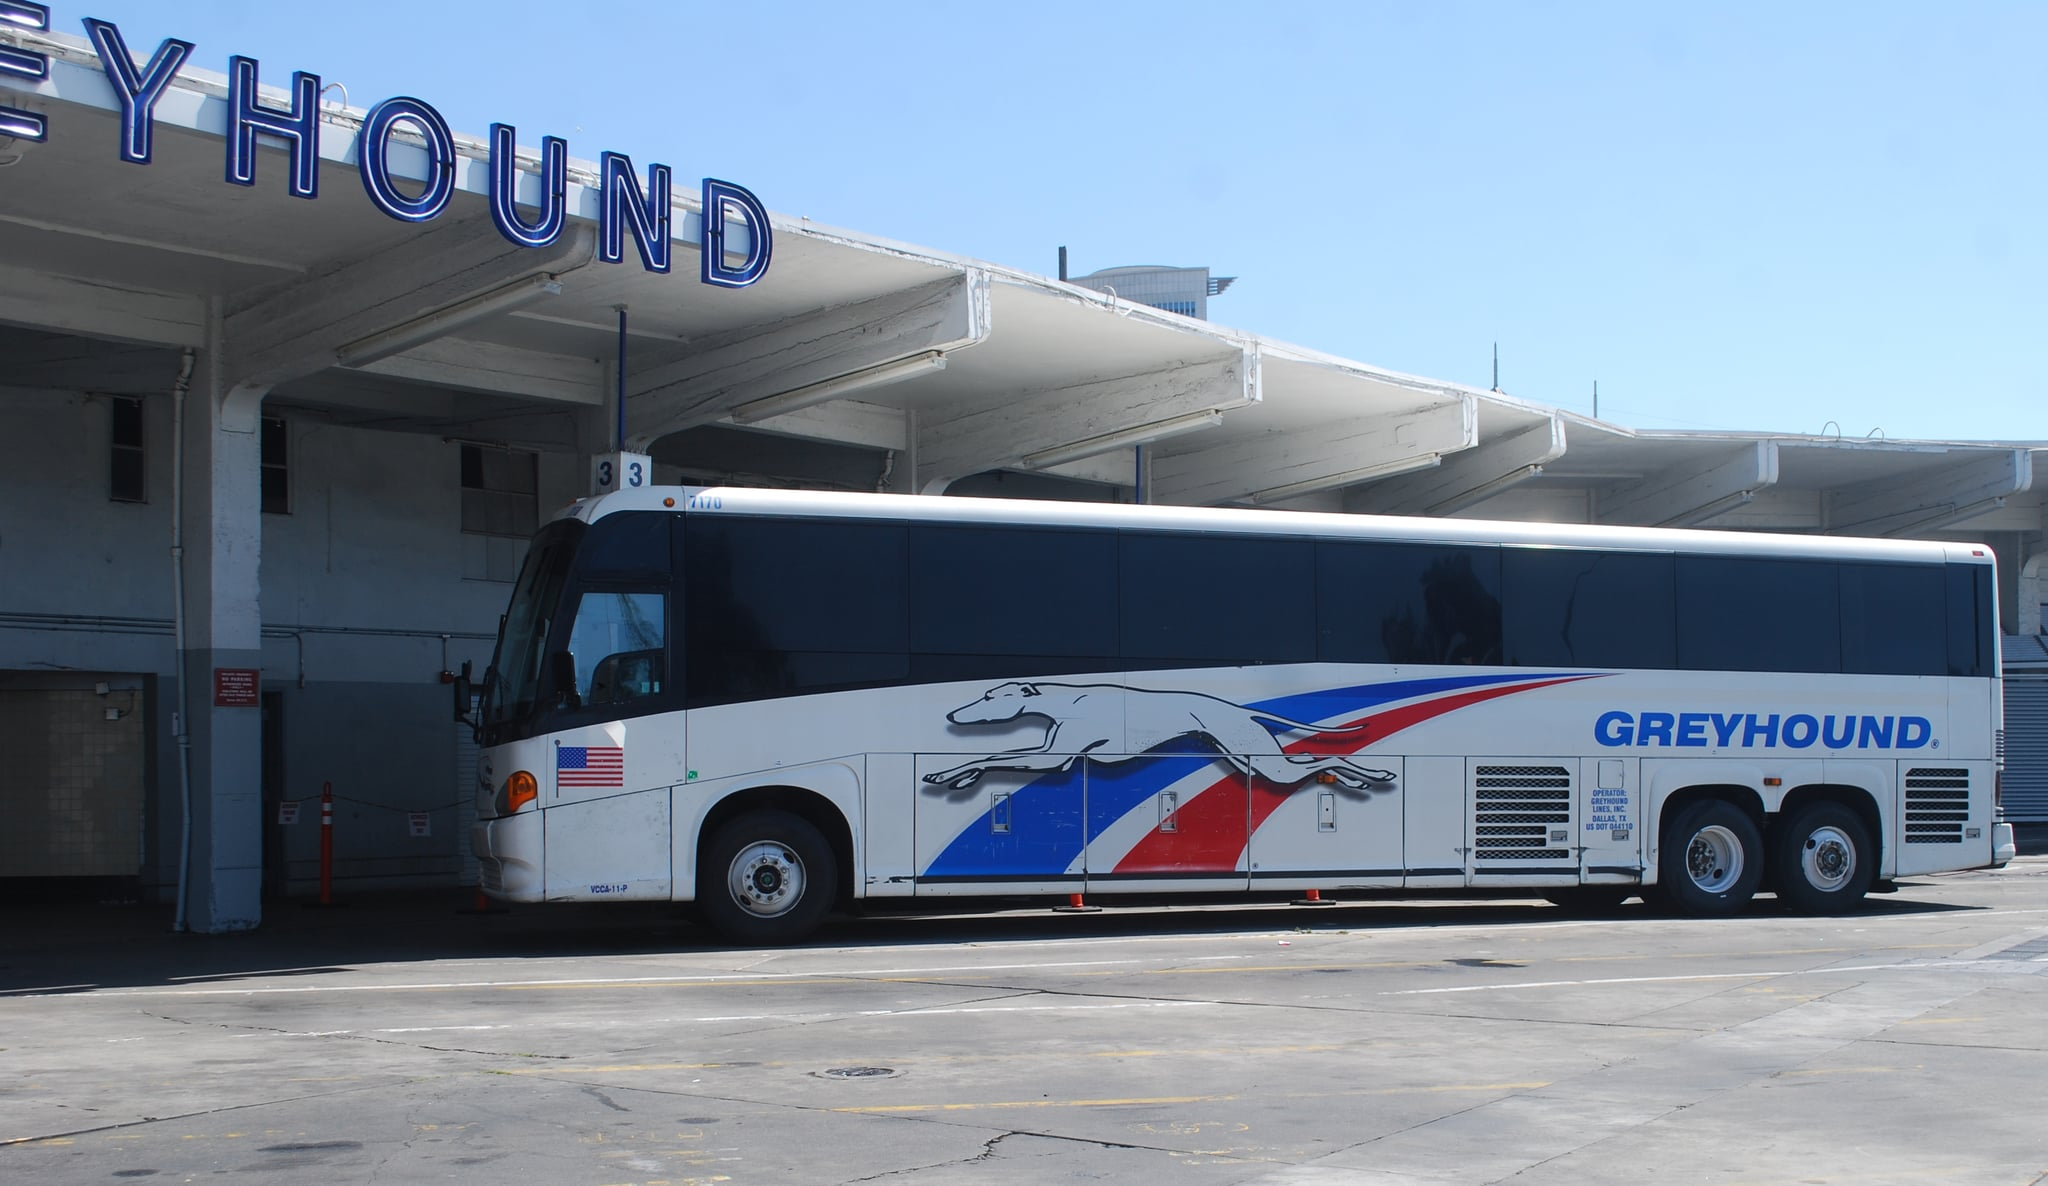 How to book a greyhound bus